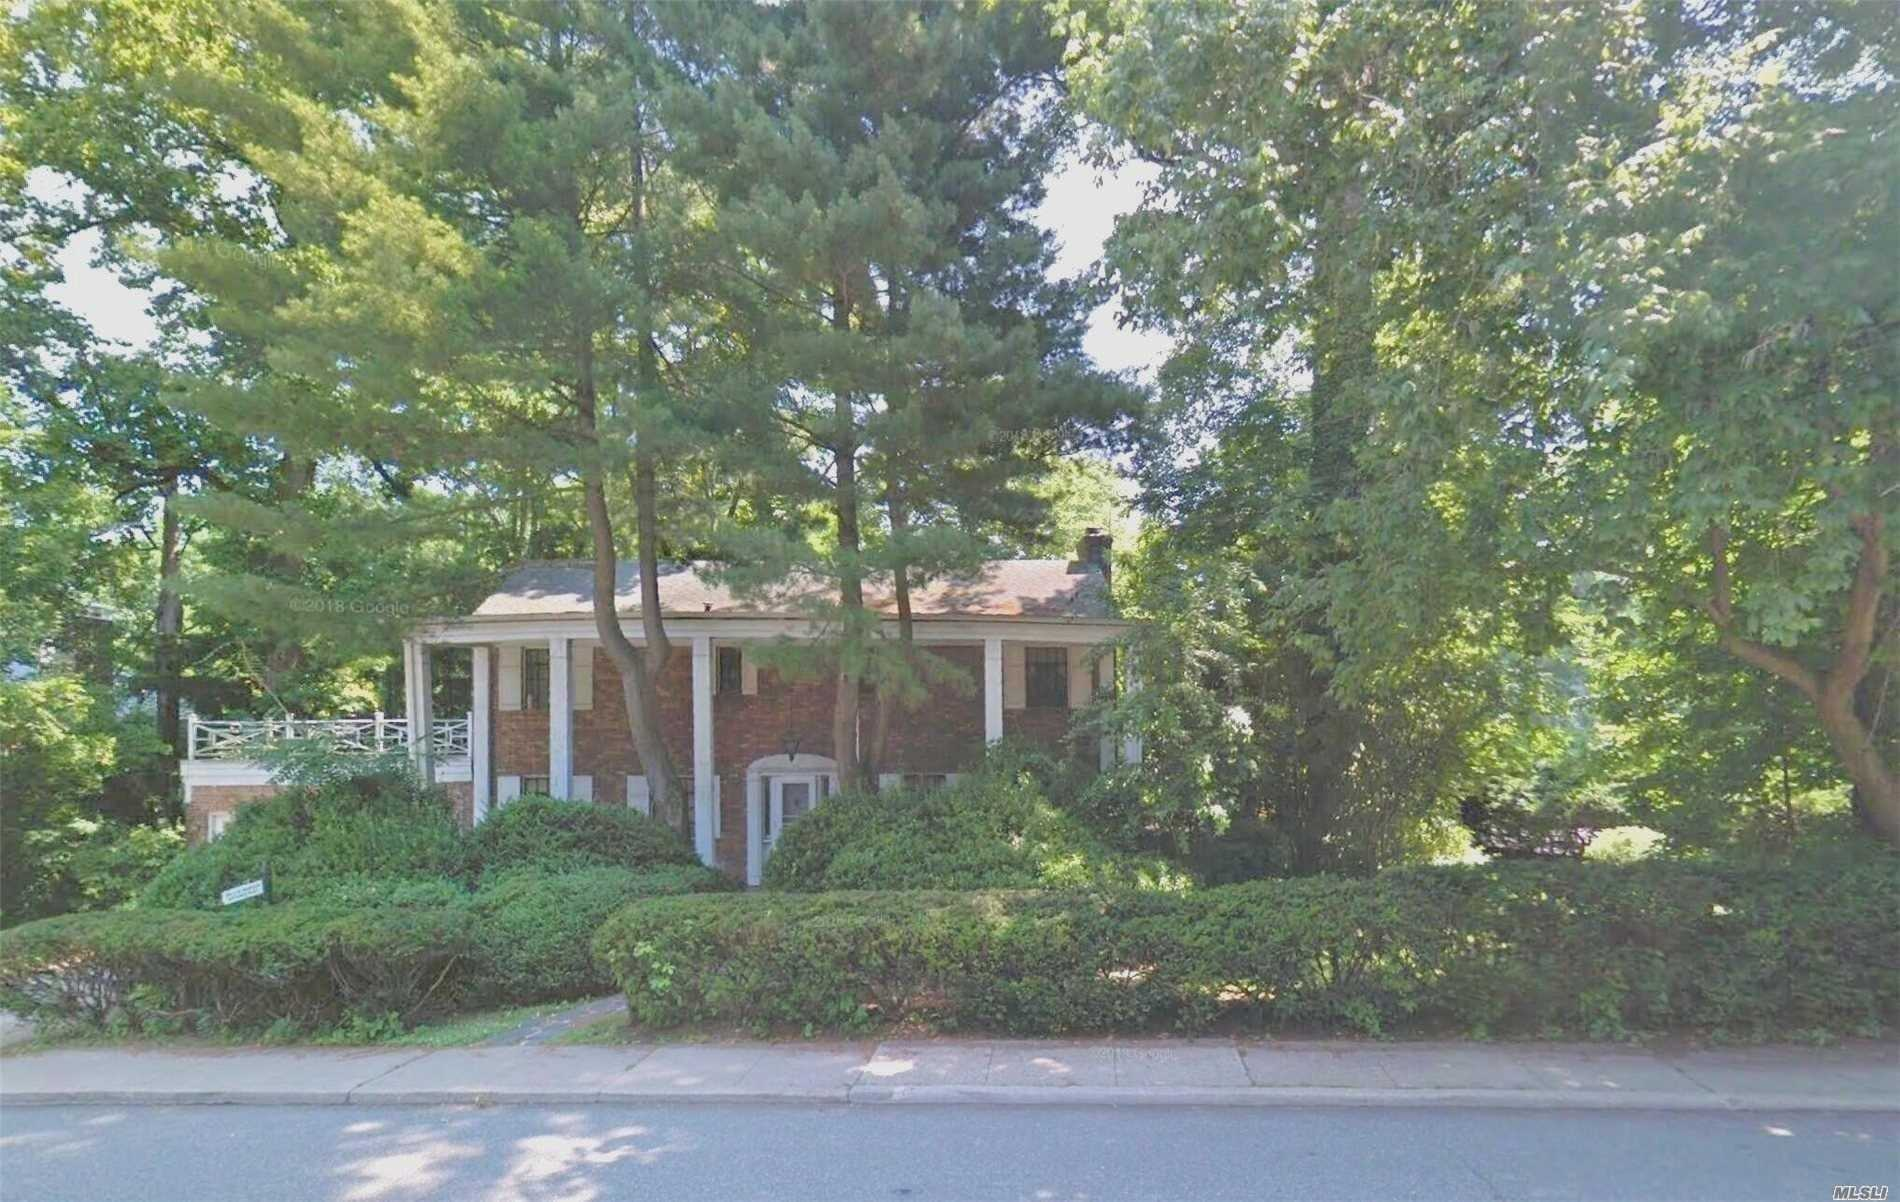 Brick Colonial With Private Entrance To Professional Office. Large 3 Bedroom 2.5 Bath, Formal Living Room And Dining Room. Large Enclosed Porch. Nice Corner Lot. Needs Tlc. Priced To Sell.